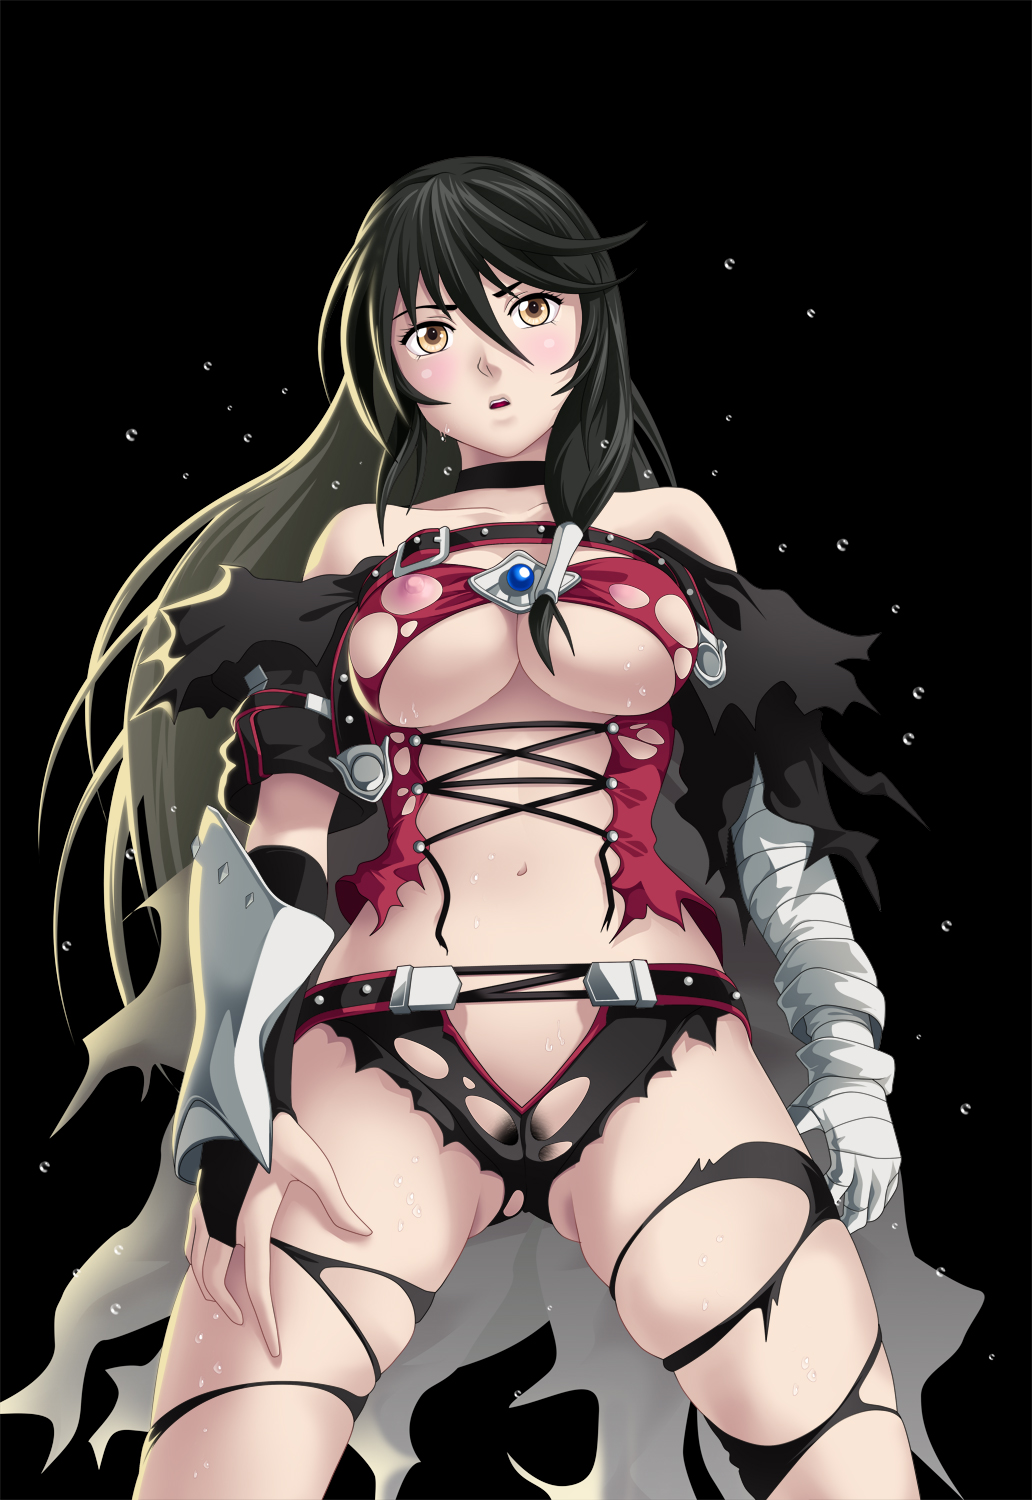 hentai velvet crowe Dead or alive xtreme beach volleyball nude